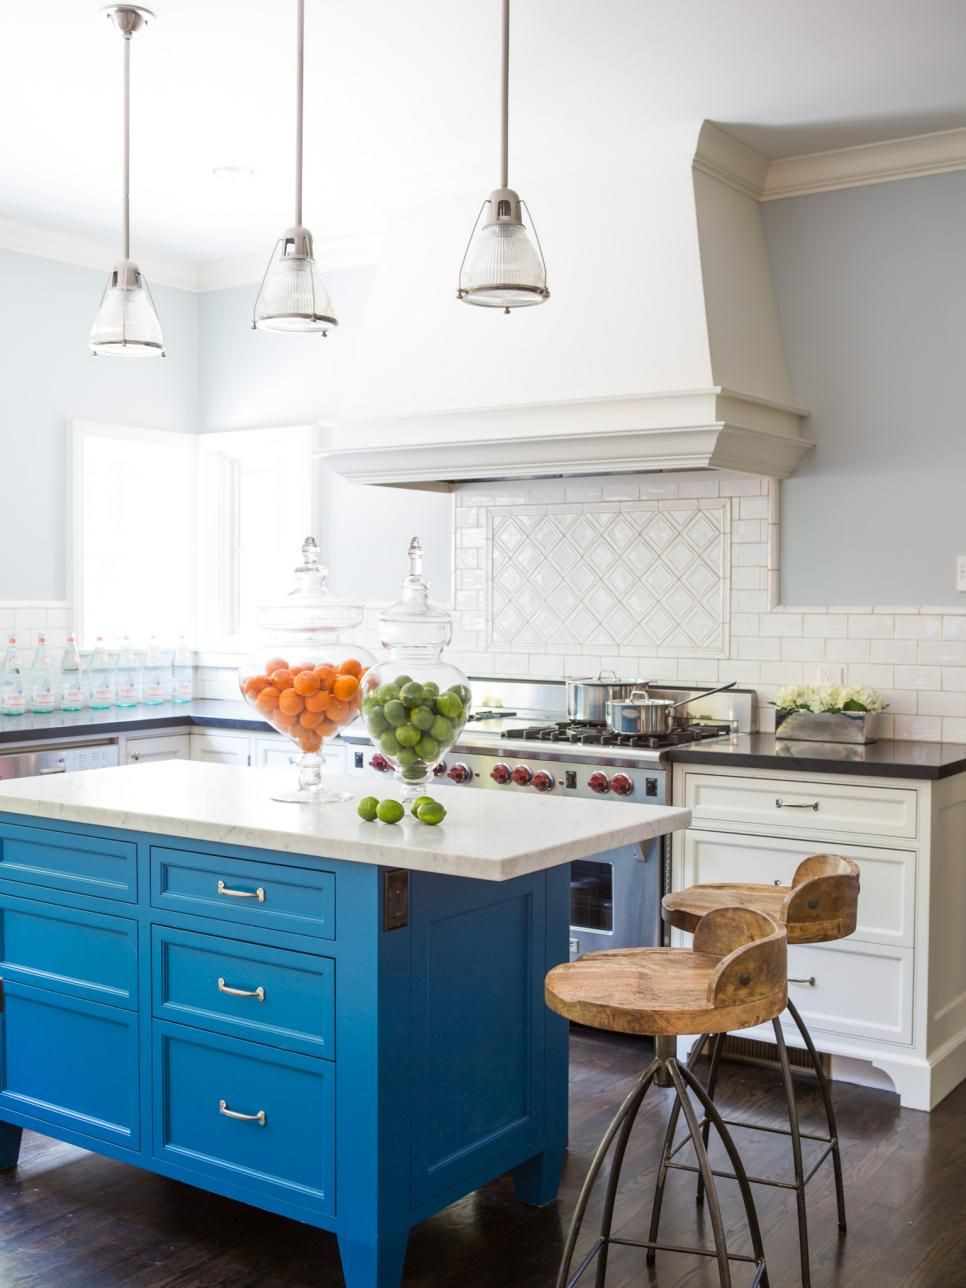 20 Dreamy Kitchen Islands | Cabinets, Traditional kitchens and Islands